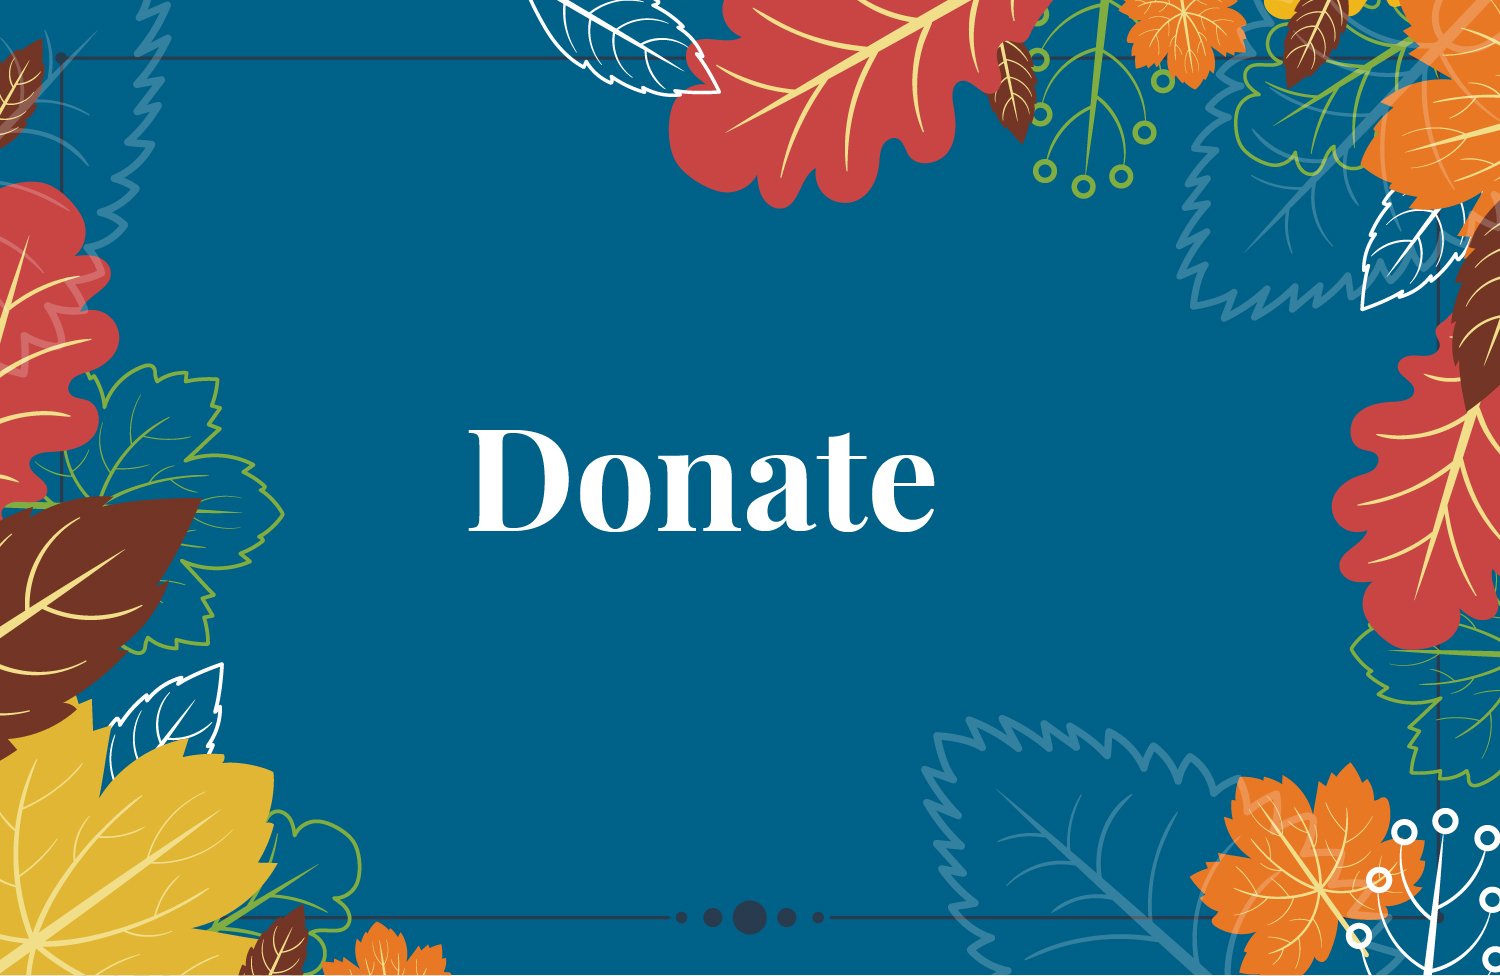 """donate"" on blue background with fall leaves"